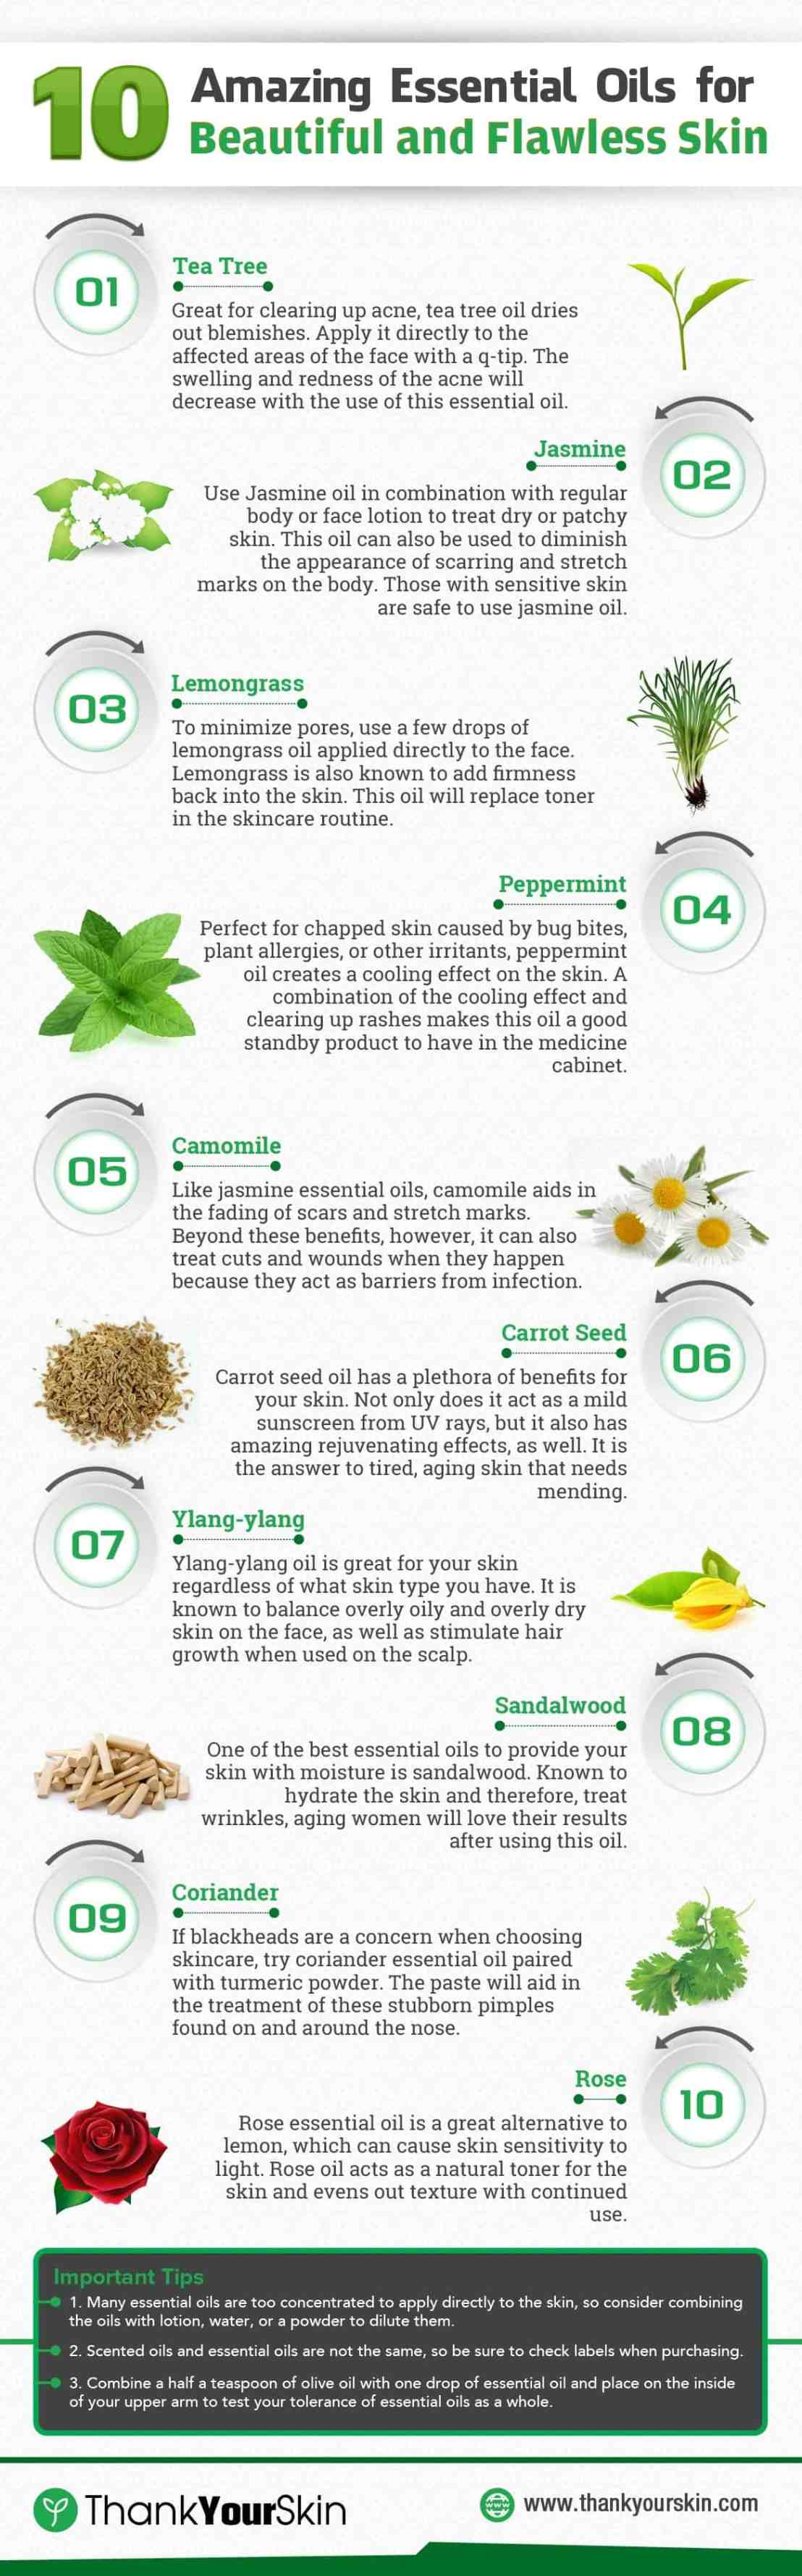 10 Best Essential Oils for Beautiful and Flawless Skin